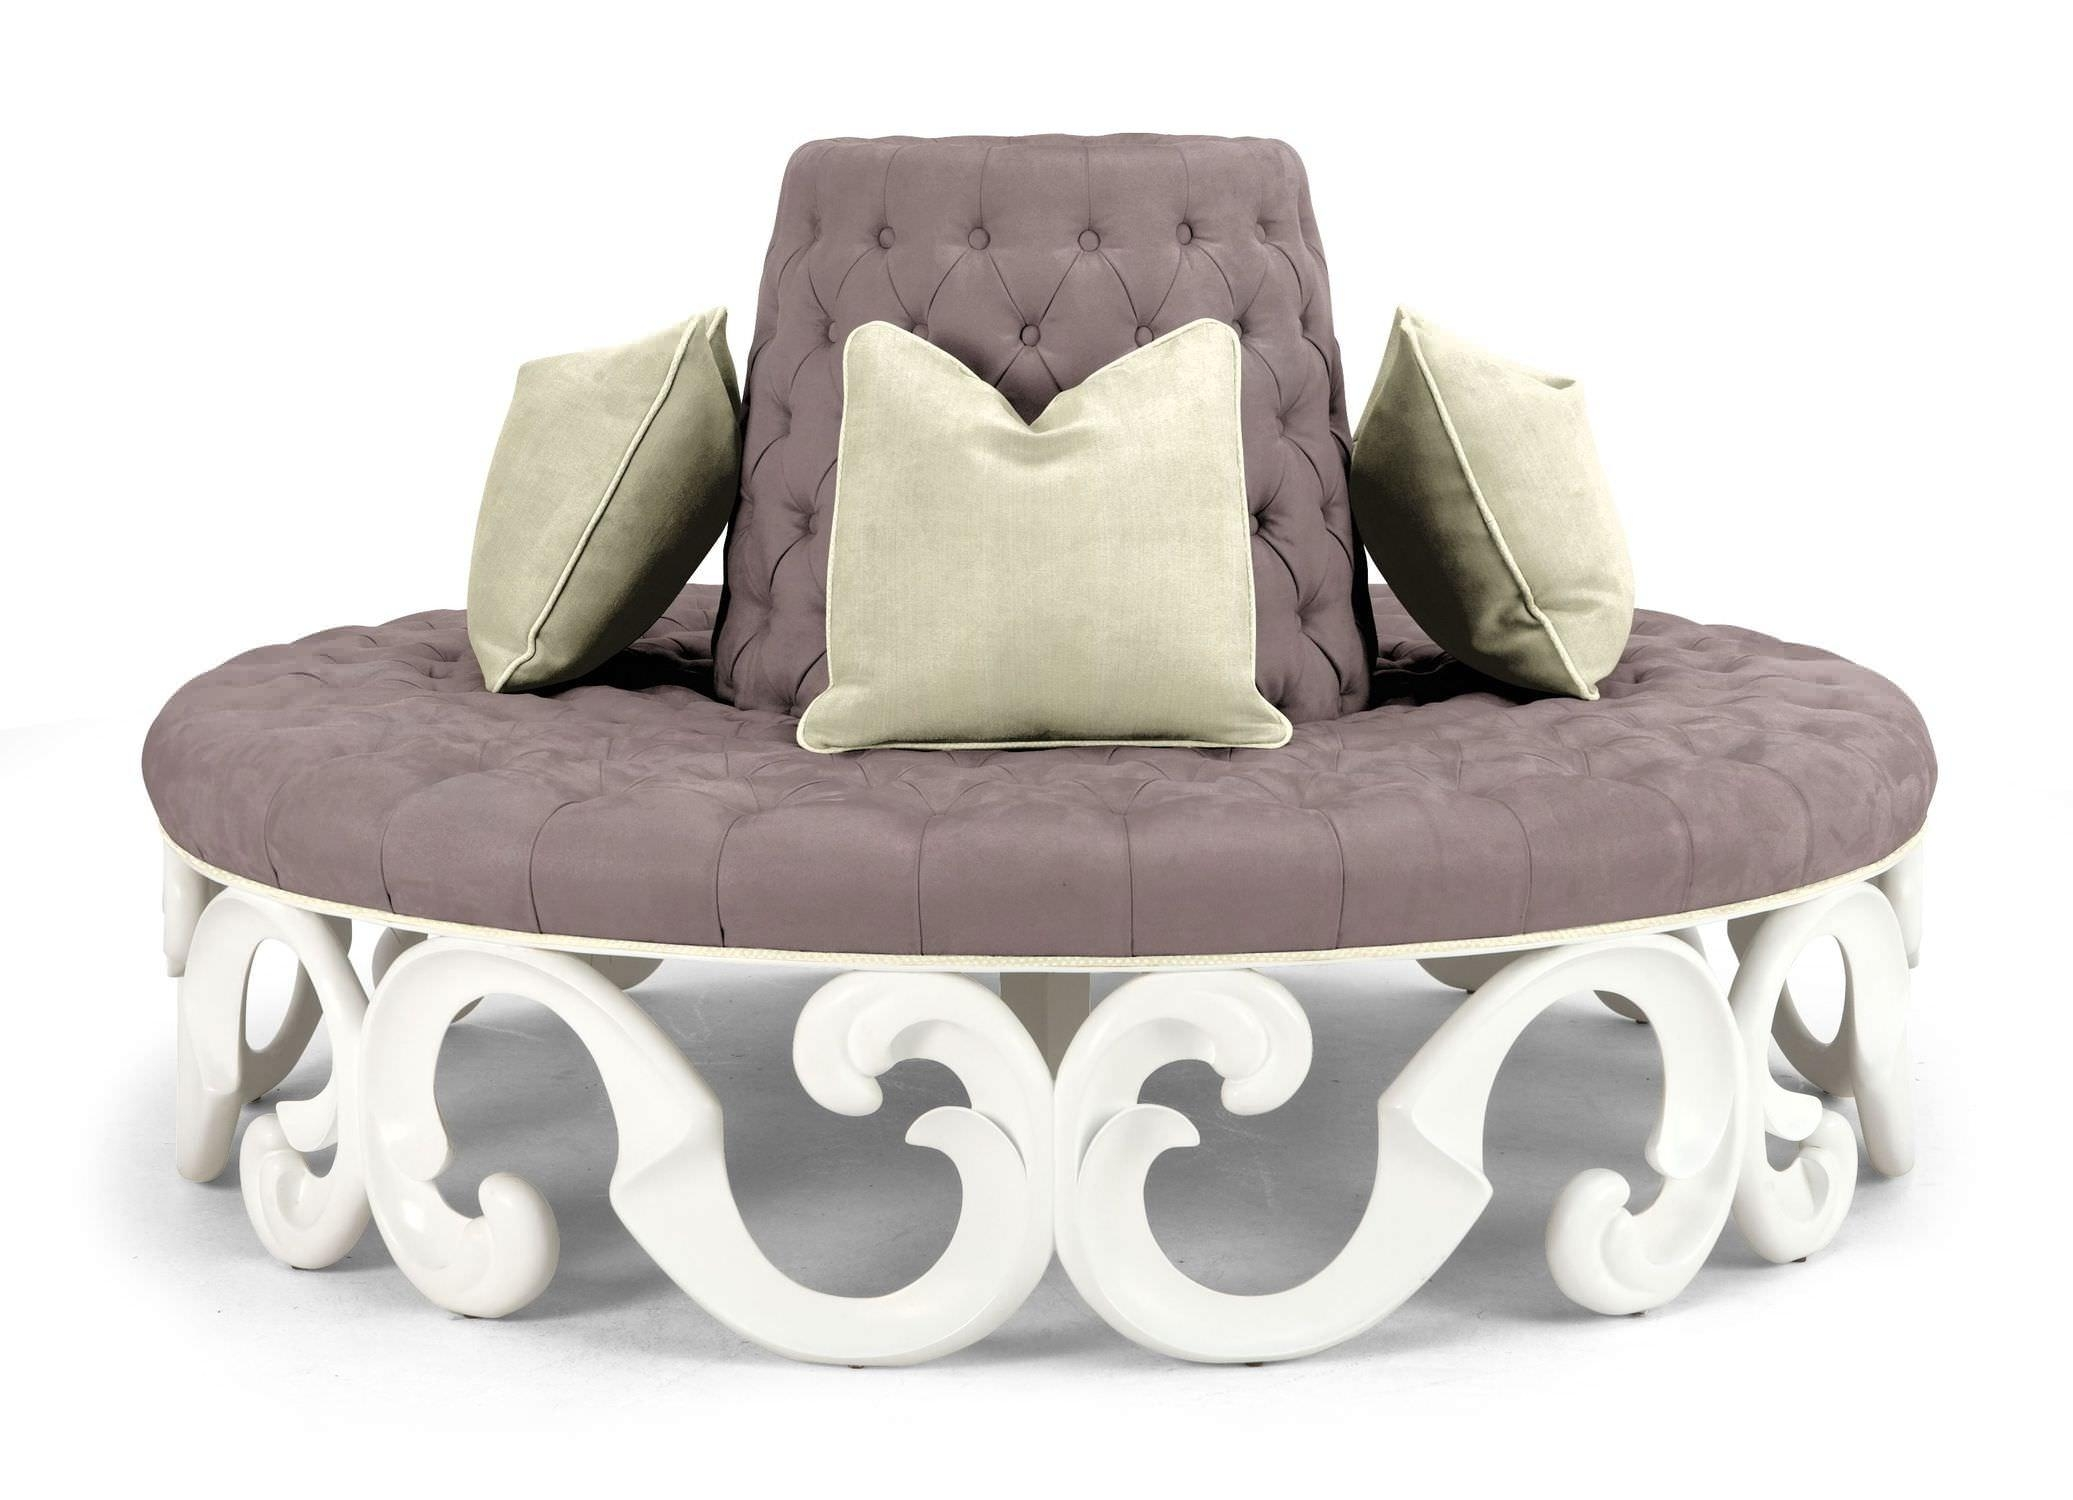 Curved Outdoor Sofa Furniture – Gallery Image Iransafebox Regarding Round Sectional Sofa (Image 3 of 20)